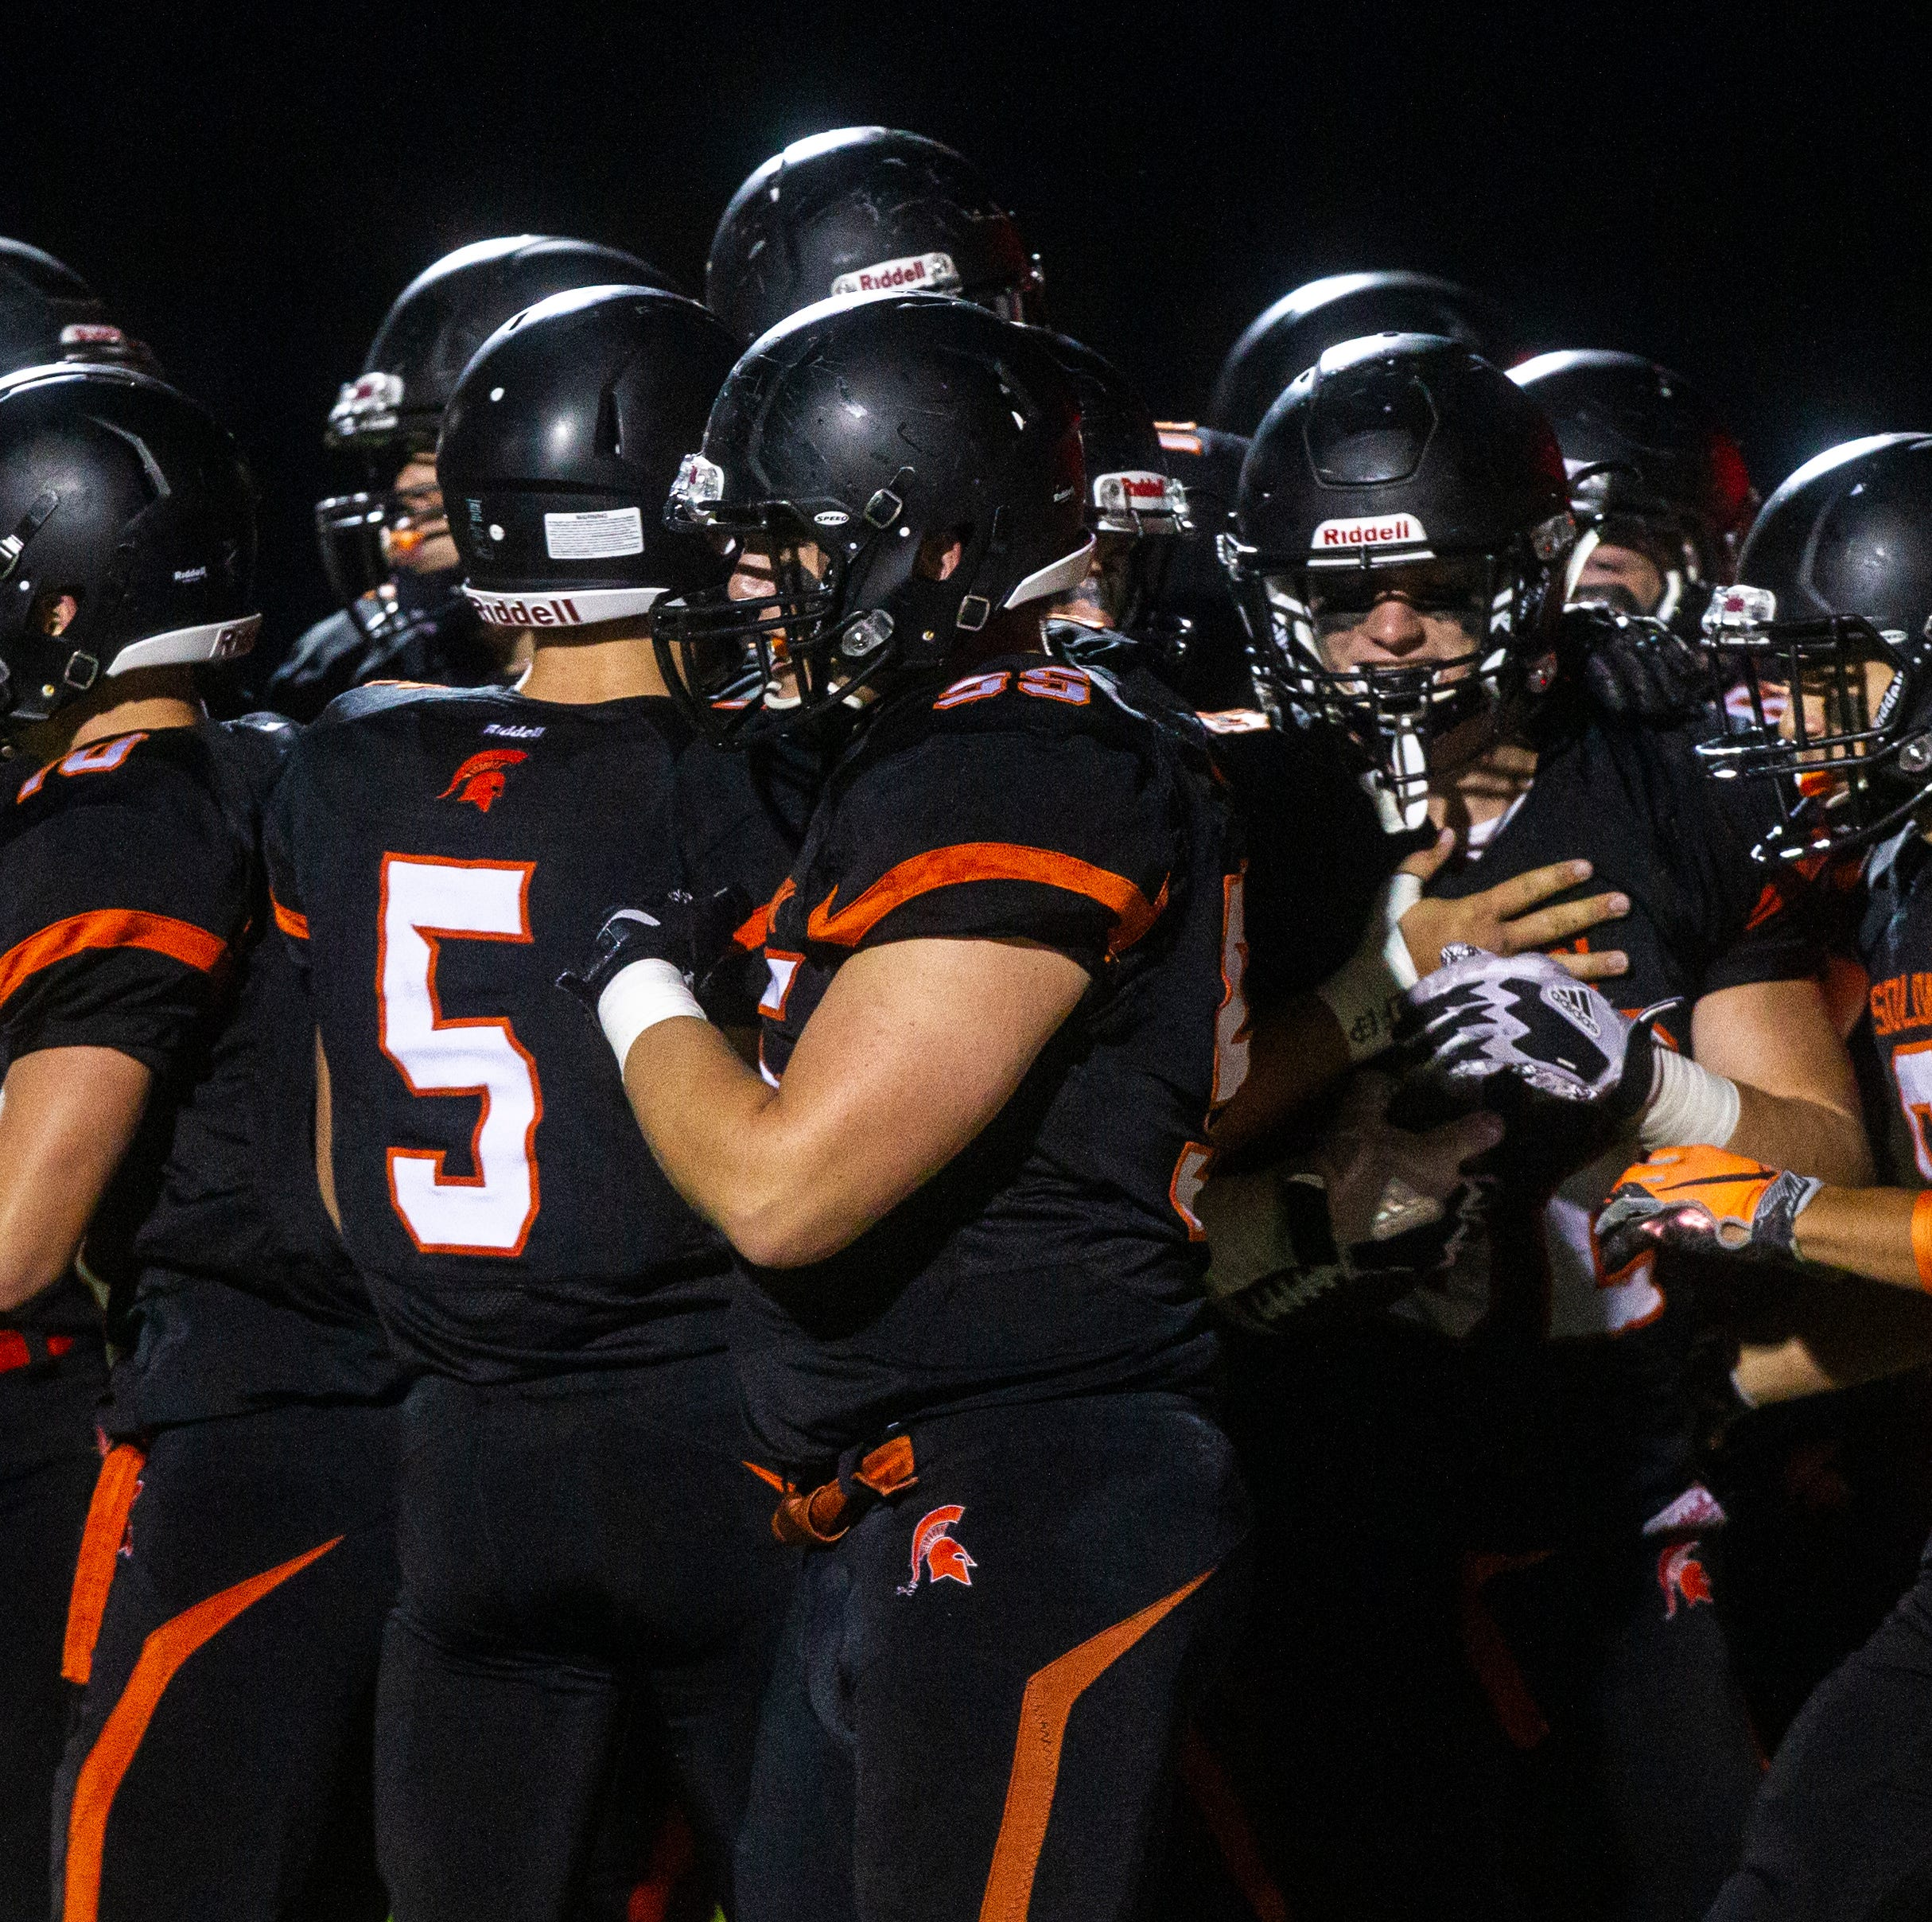 Iowa high school football: What we learned from Solon's blowout win over Washington